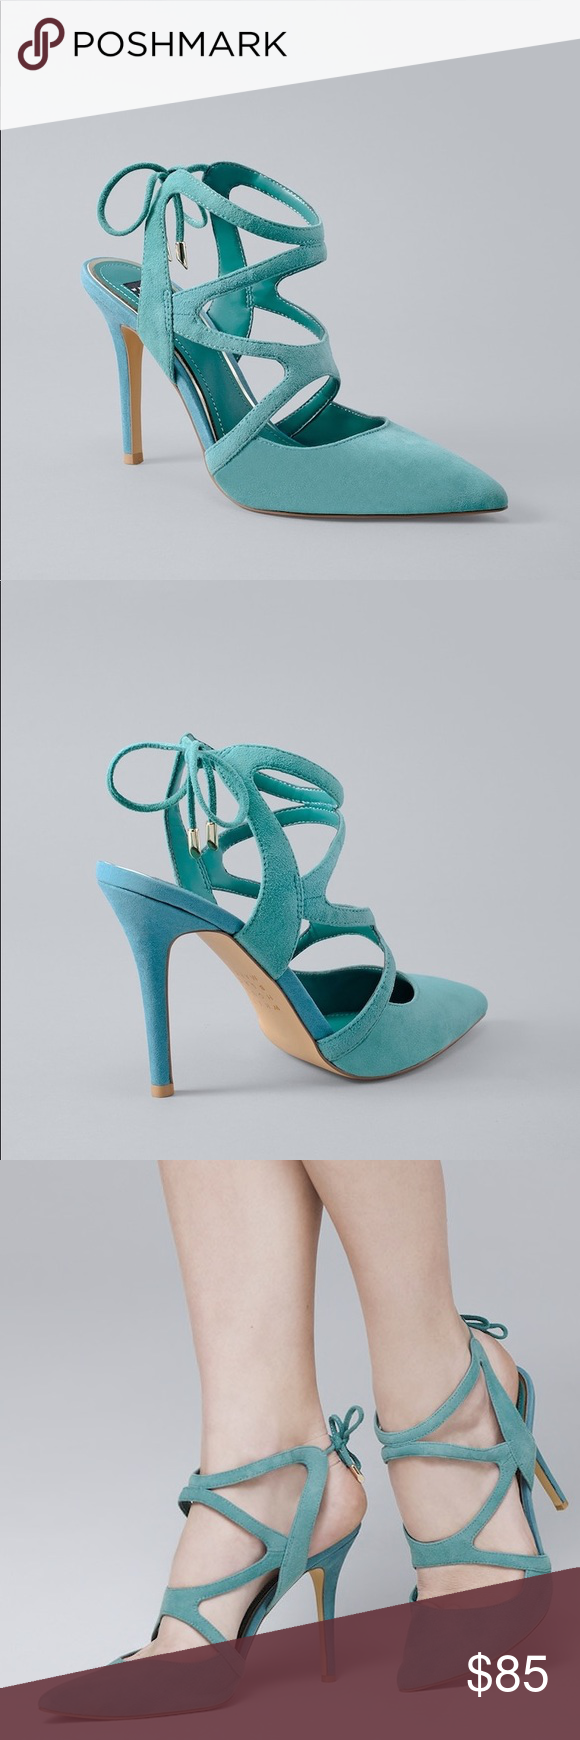 cf467088d469 MARLOW SUEDE STRAPPY HEELS Marlow strappy heels in mineral green Breathable  lining  memory foam footbed Approx. 3 3 4